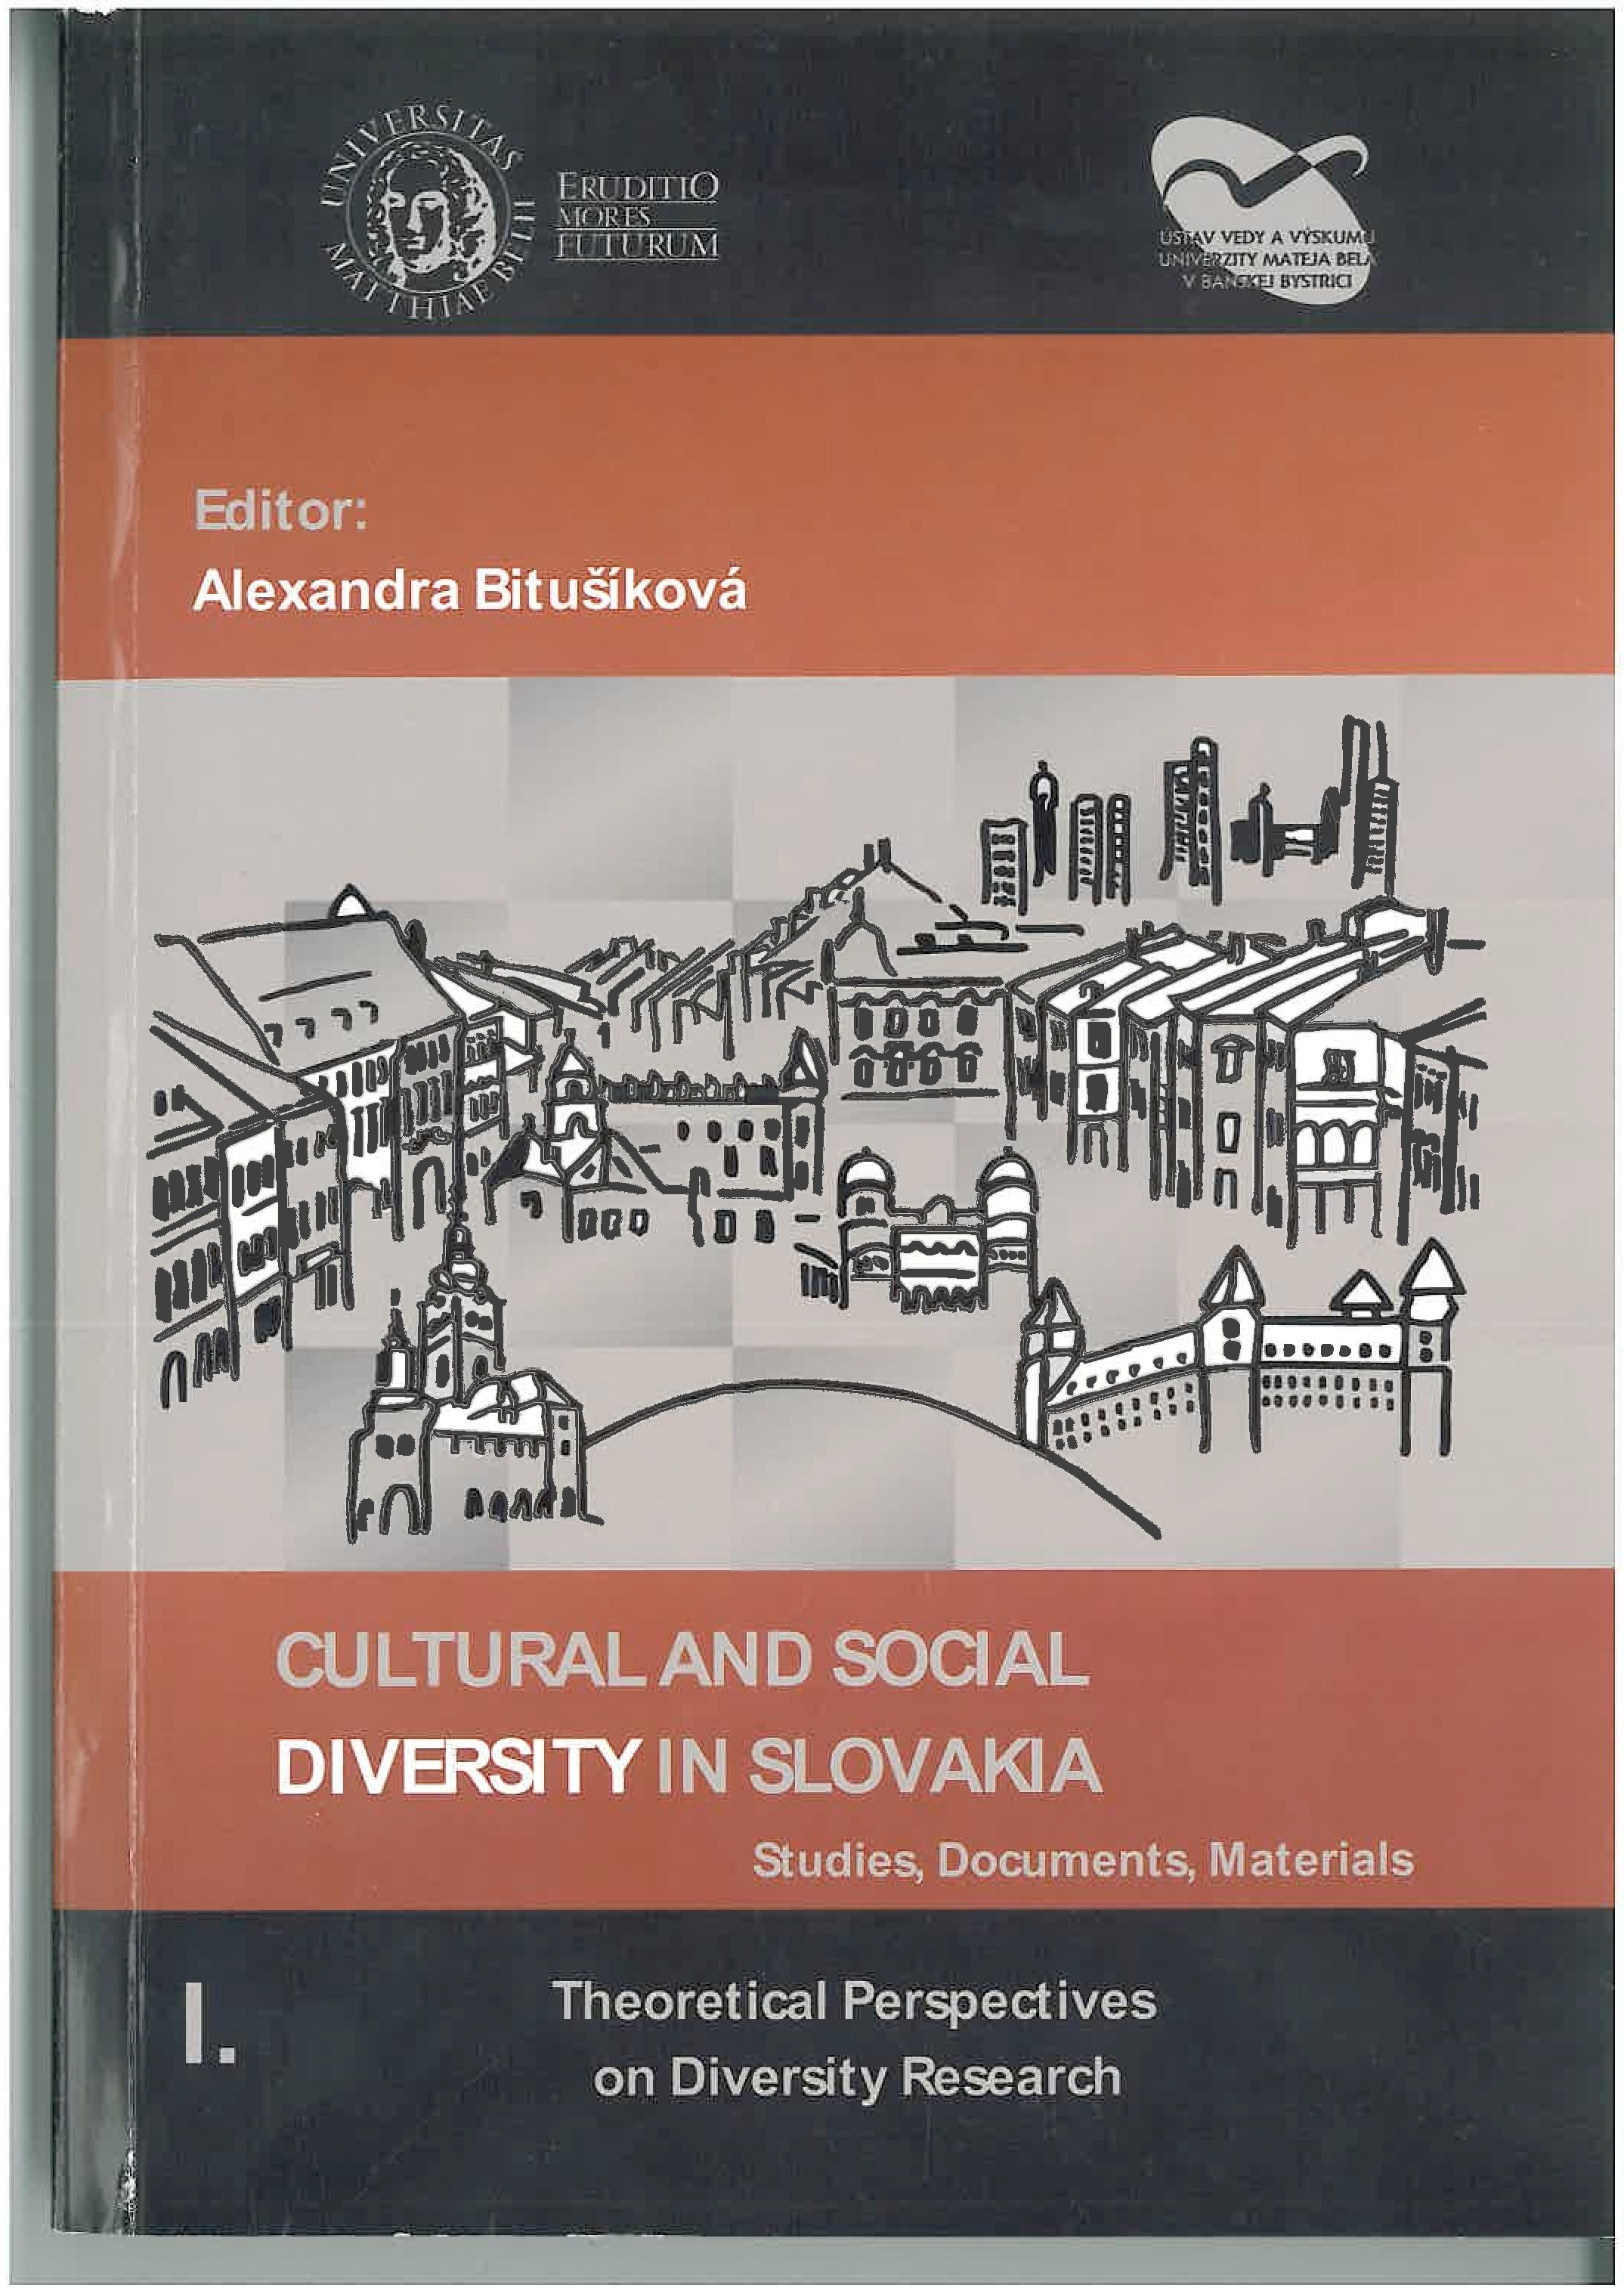 Kultúrna a sociálna diverzita na Slovensku Štúdie, dokumenty, materiály I. Teoretické východiská k štúdiu diverzity CULTURAL AND SOCIAL DOVERSITY IN SLOVAKIA Studies, Documents, Materials I. Theoretical Perspectives on Diversity Research